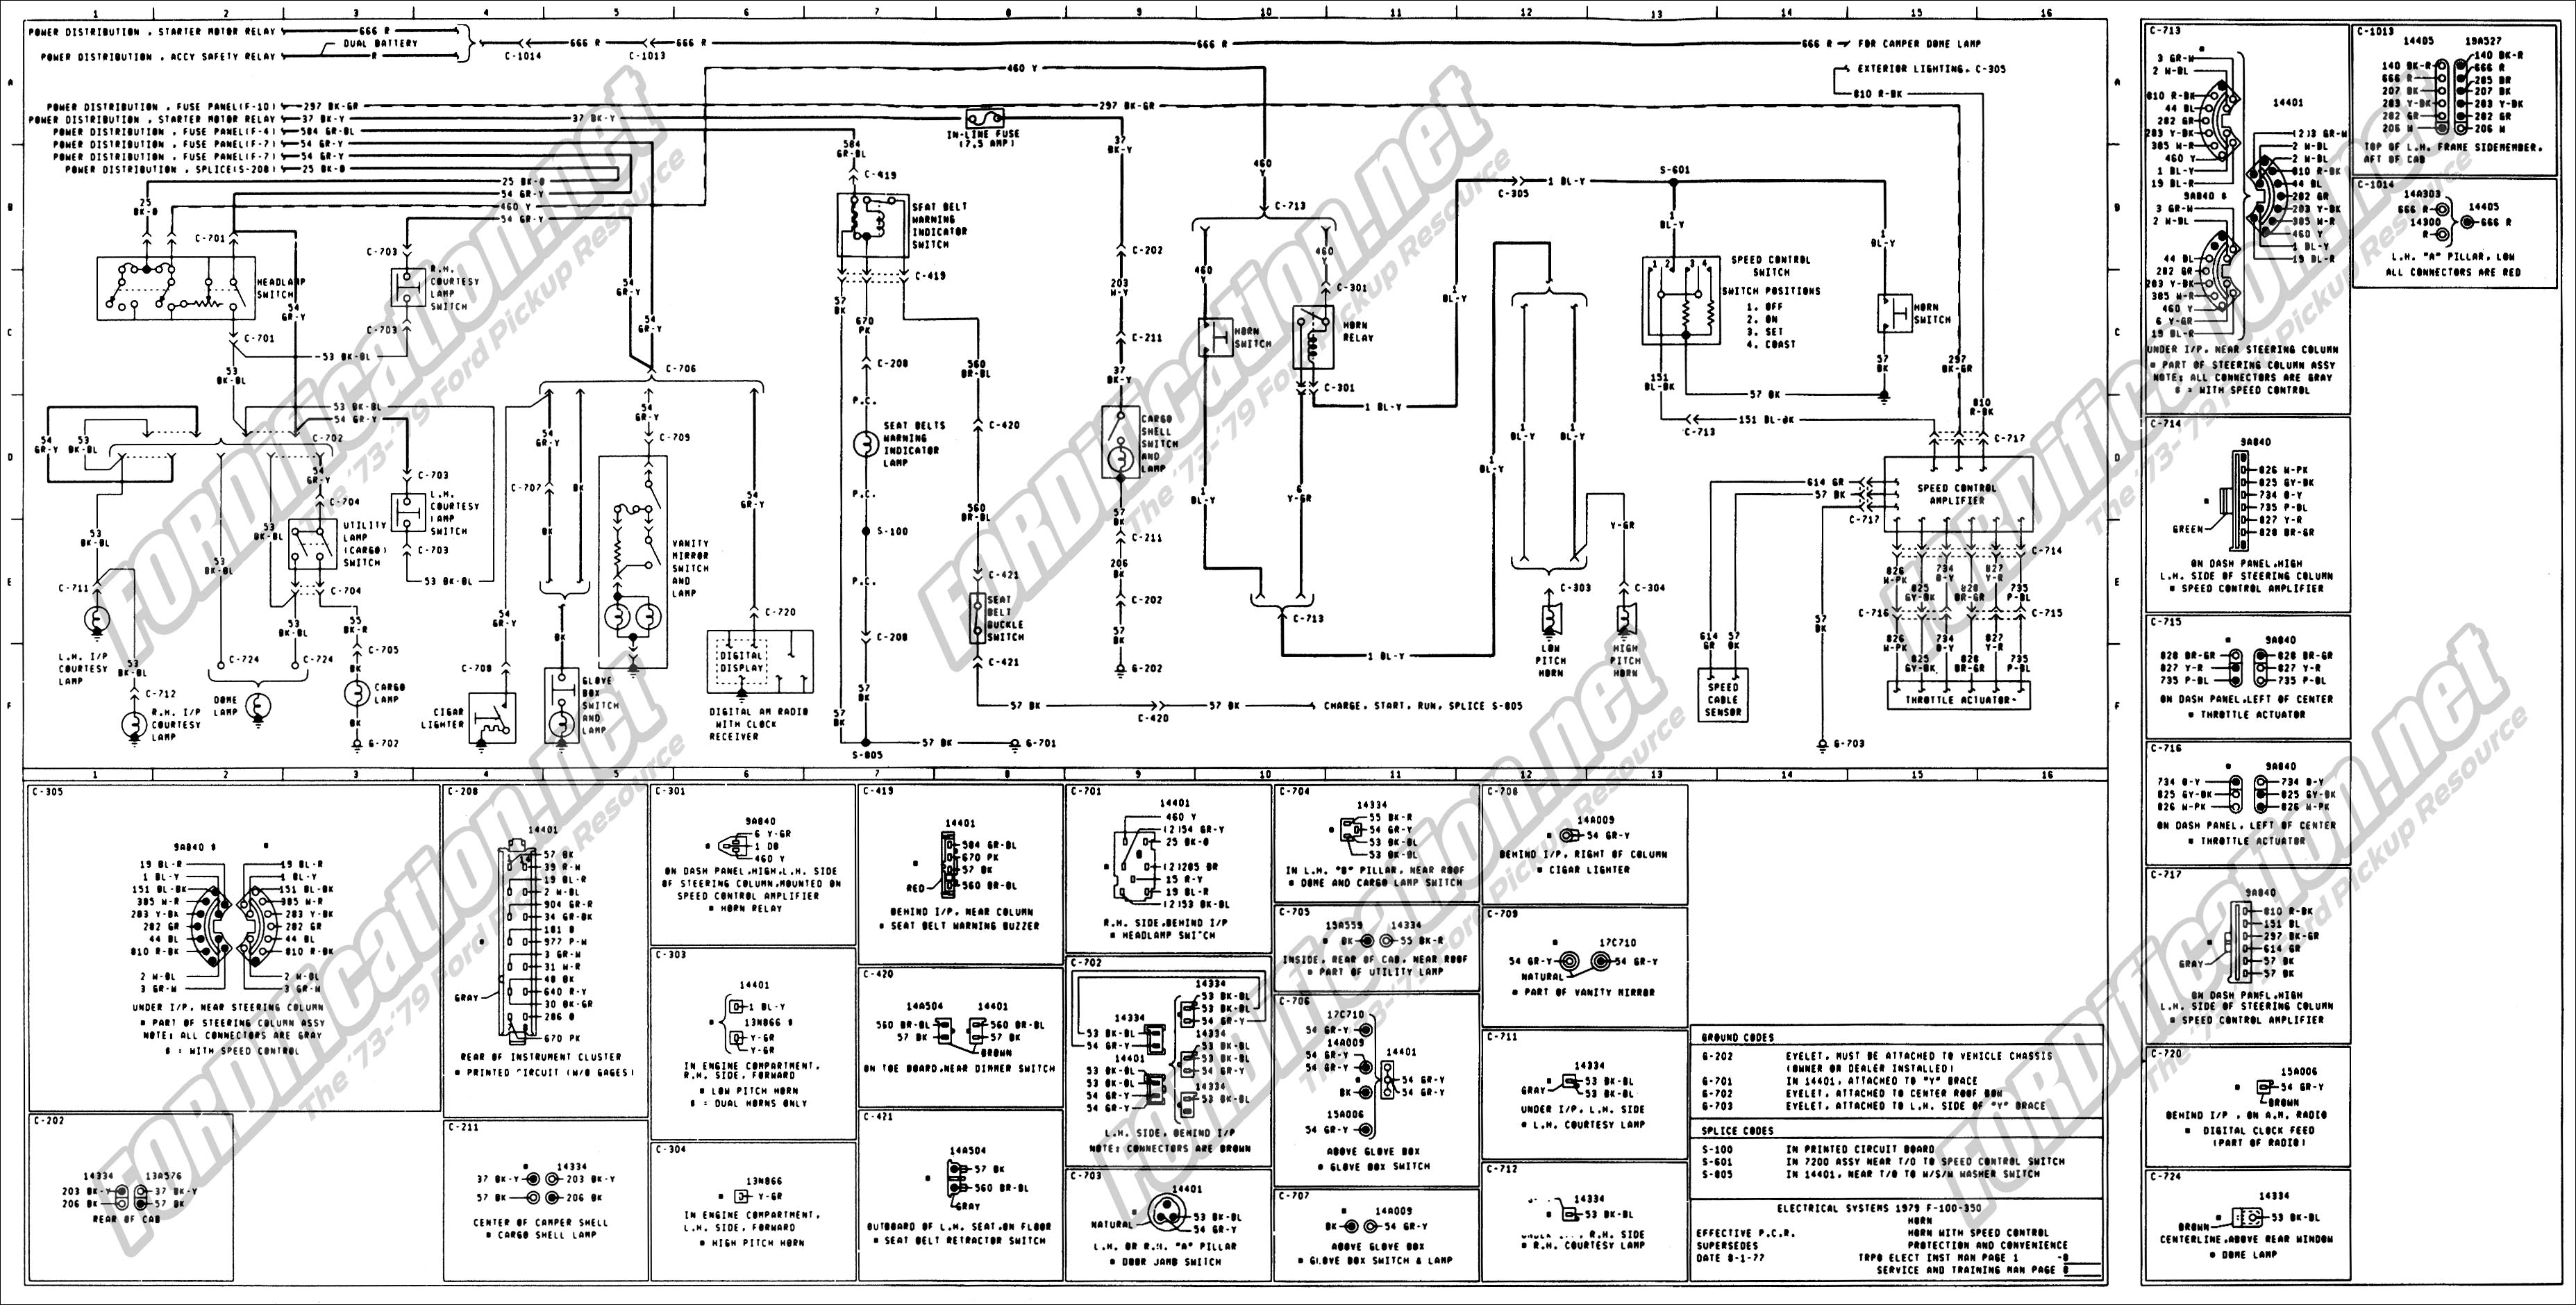 1973 1979 ford truck wiring diagrams schematics fordification net rh  fordification net 2014 ford f250 wiring diagram ford f250 wiring diagram  lights